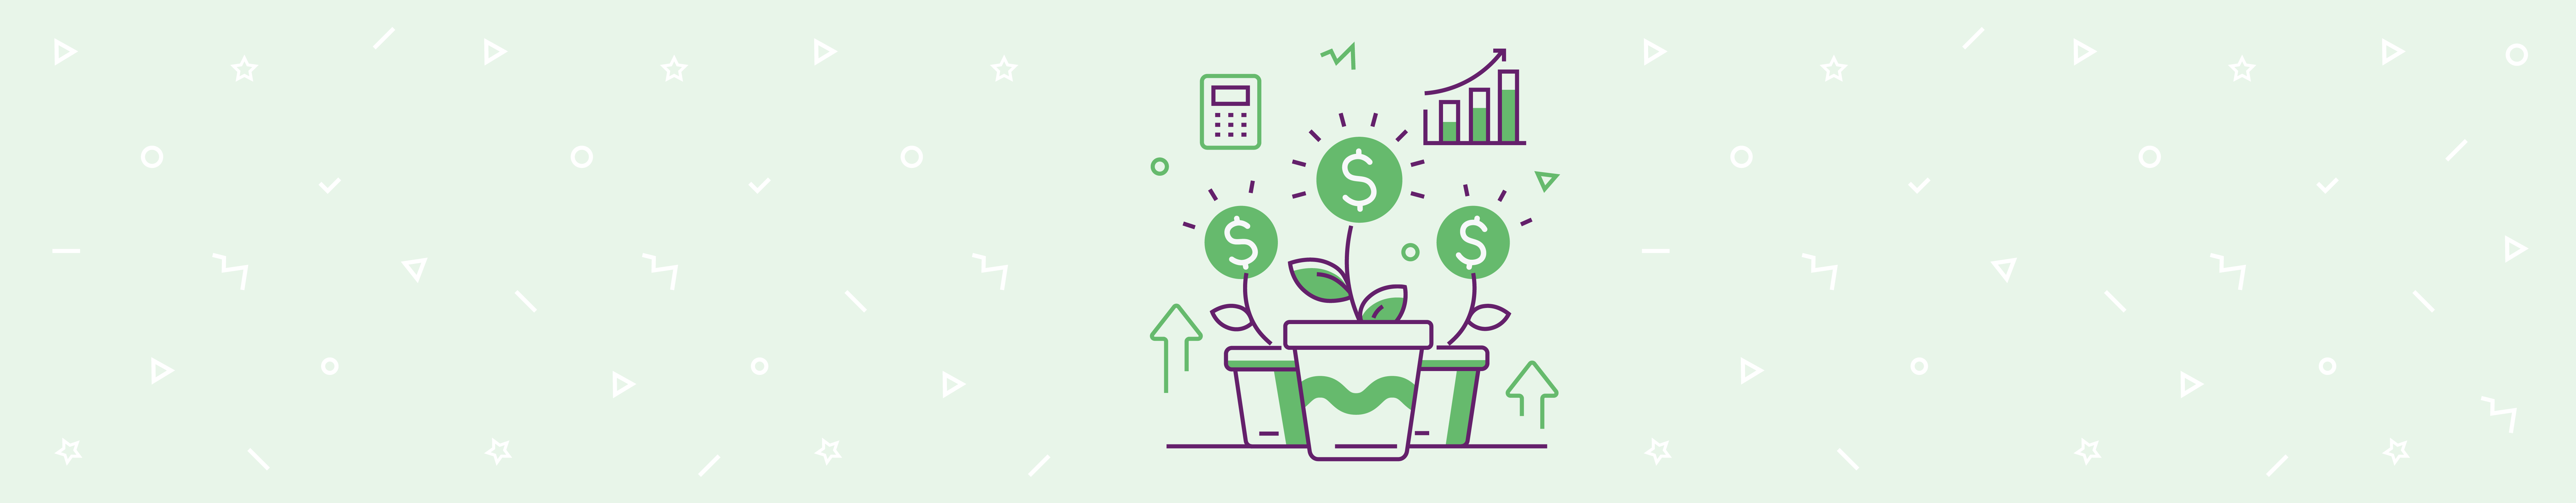 Images representing a productive sales team on green background